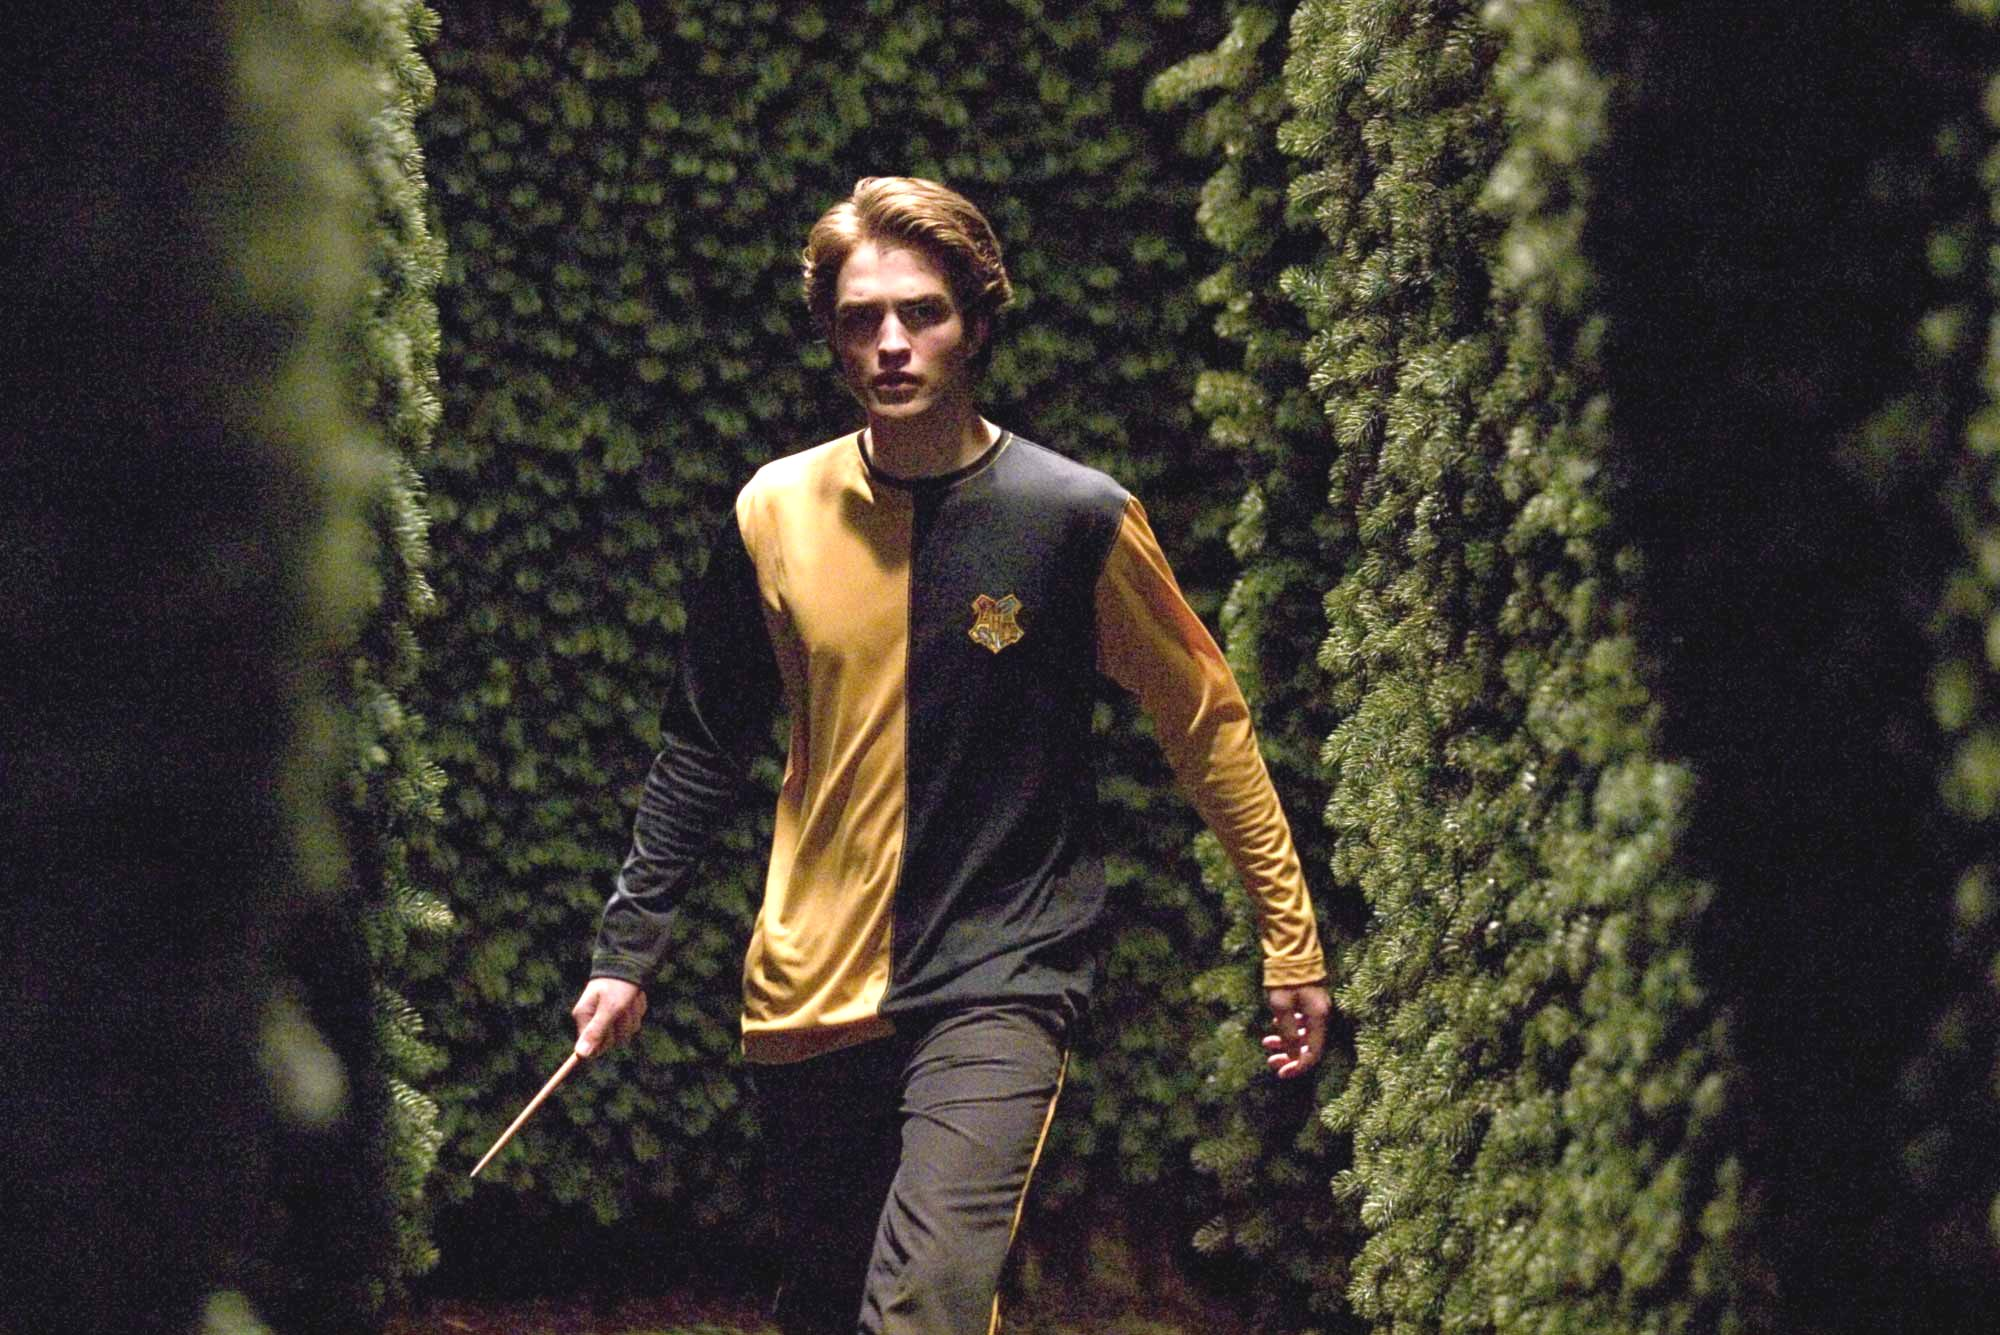 This Play About Hufflepuffs Finally Gives This Hogwarts